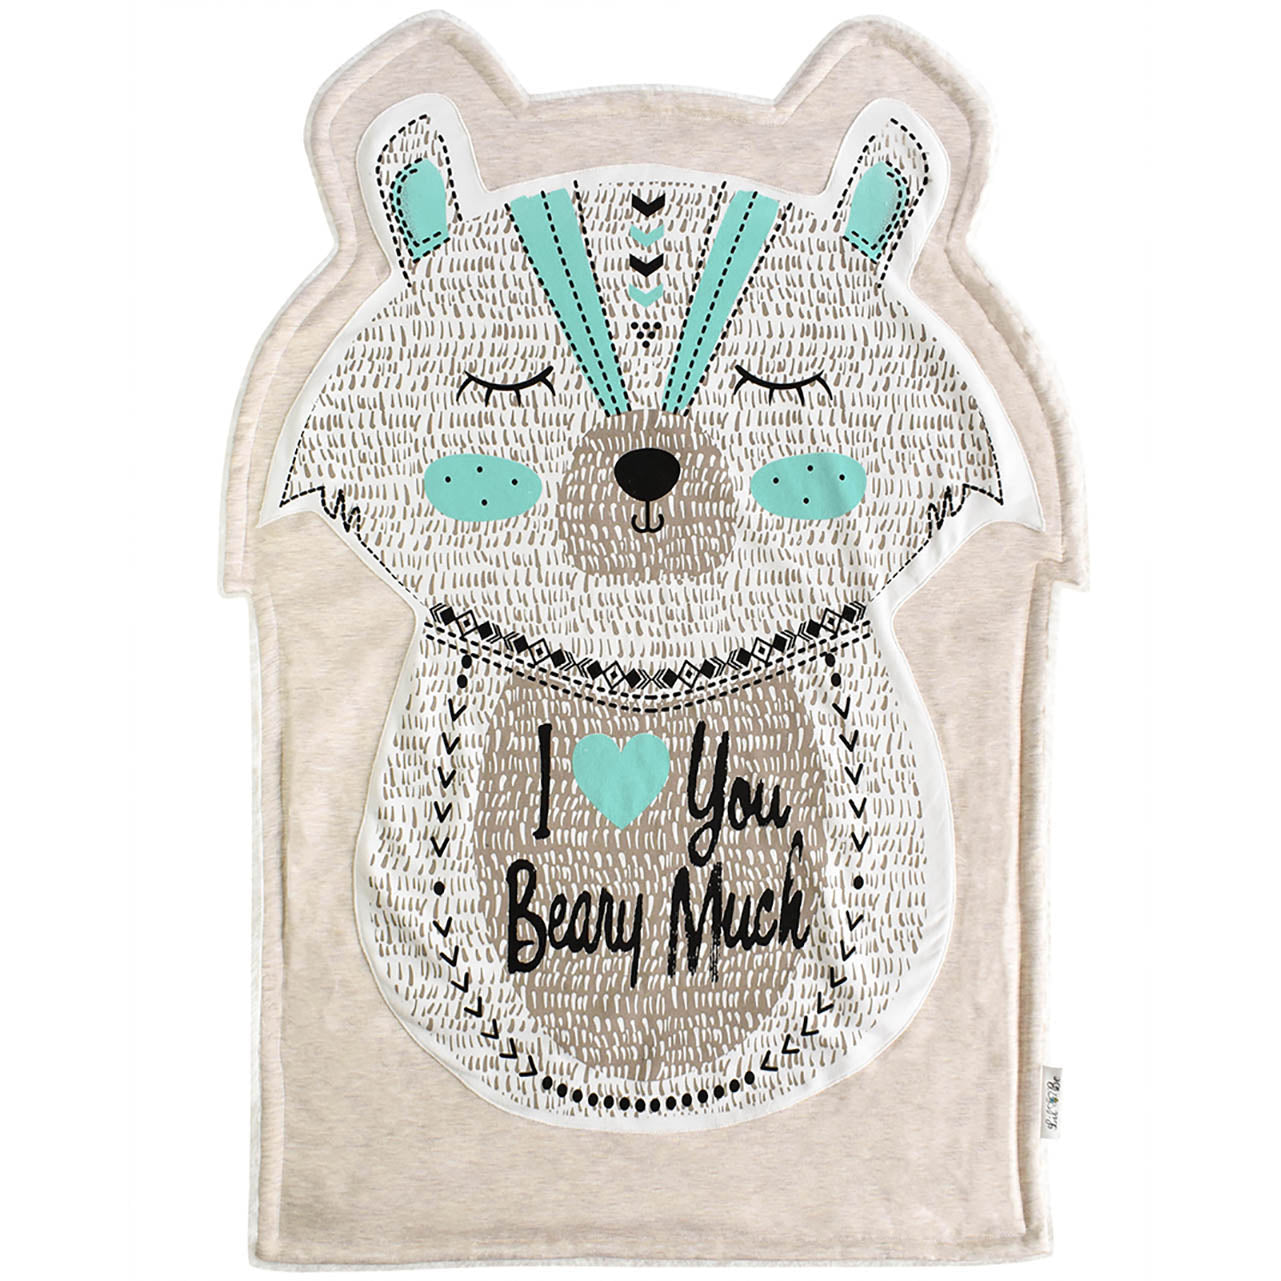 I love you beary much character shaped baby blanket